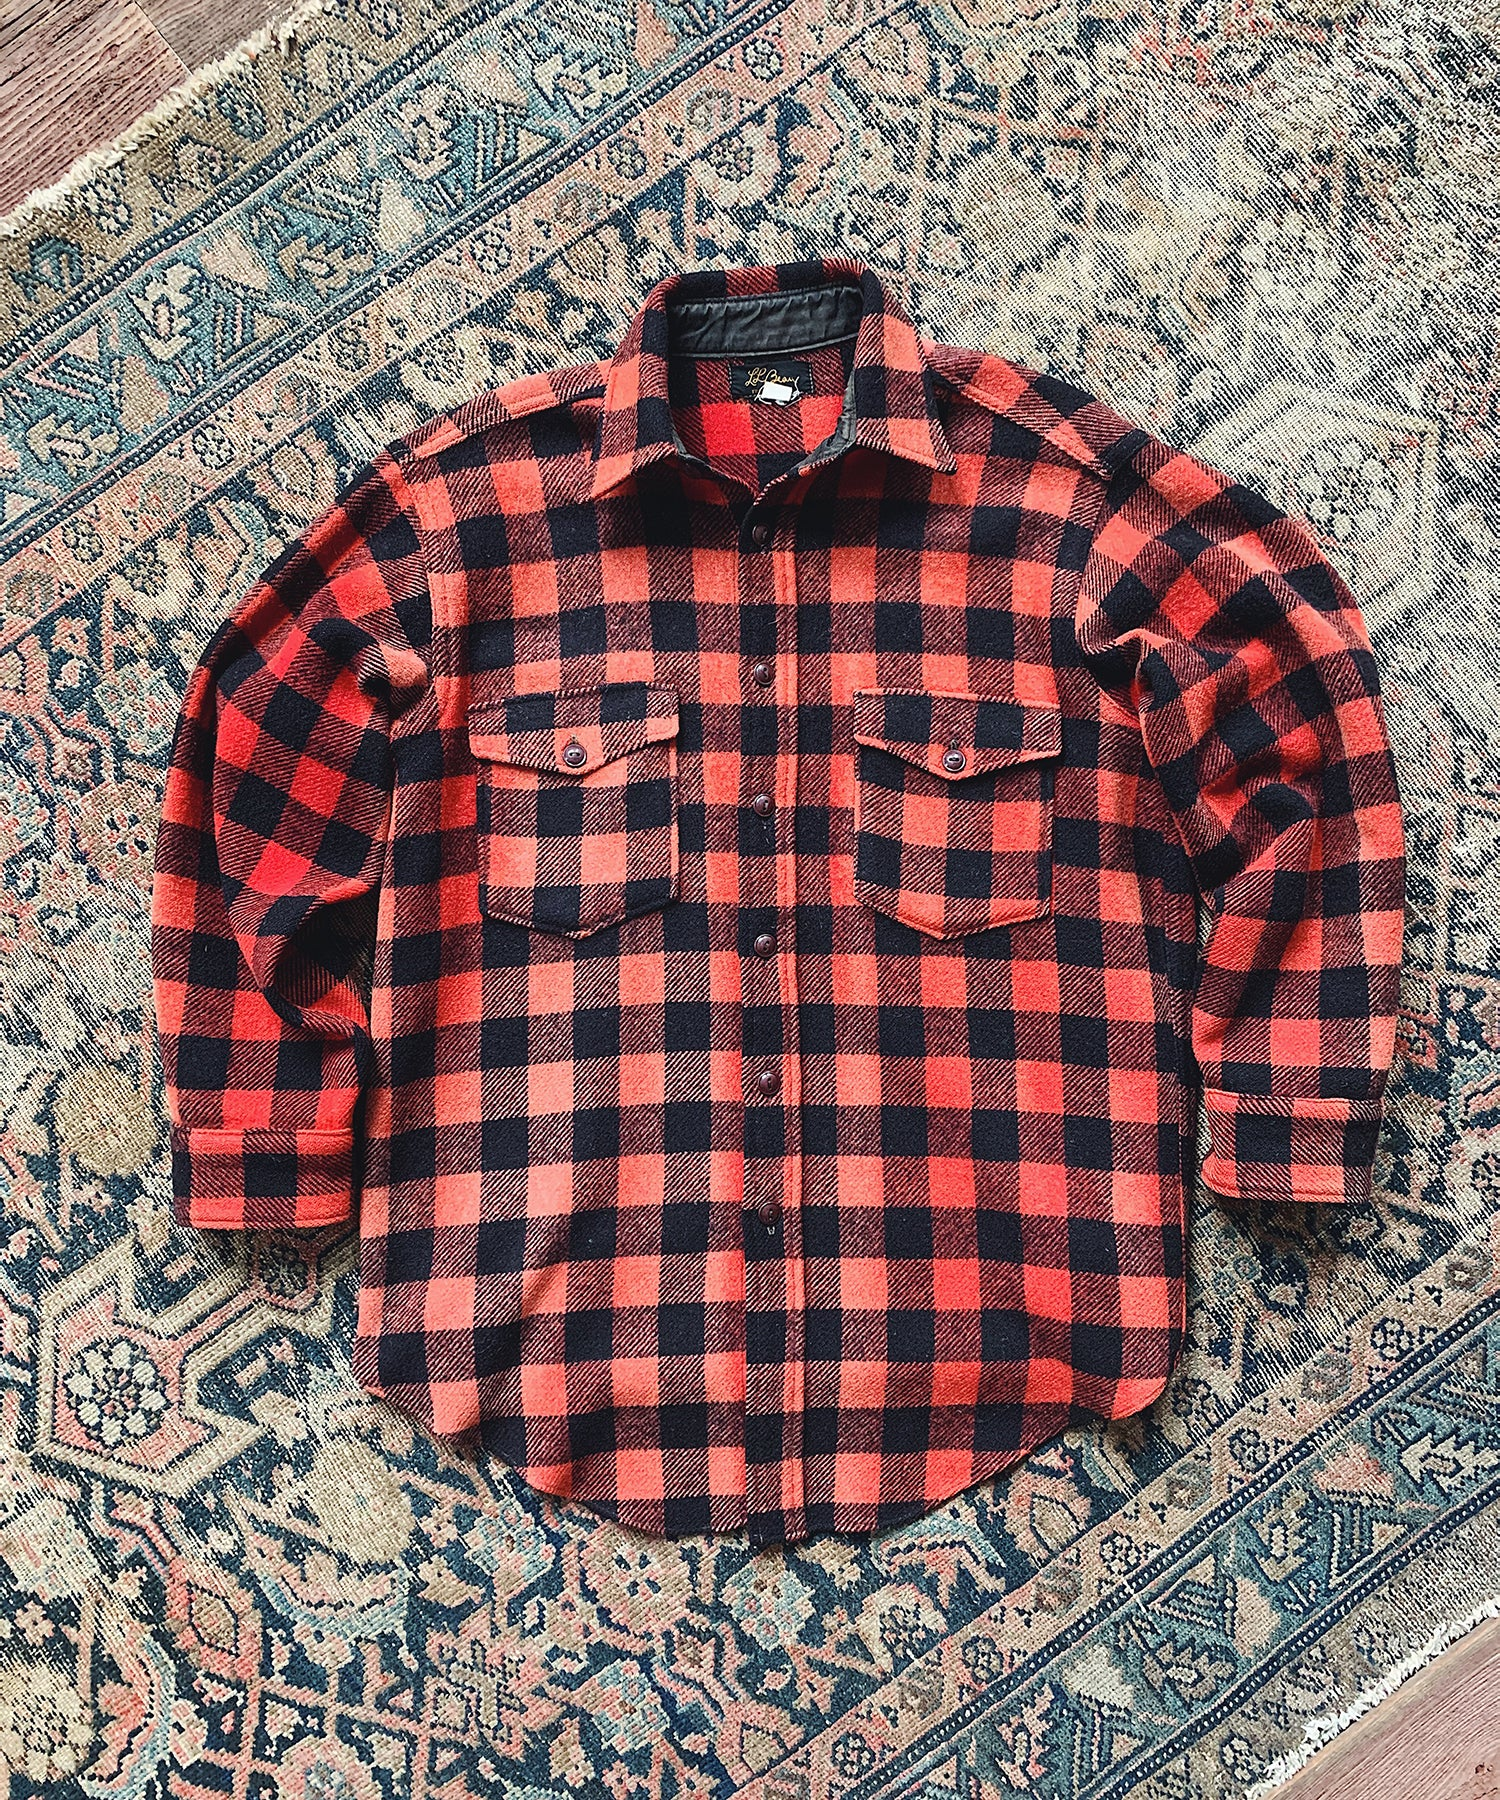 Item #12 -  Todd Snyder x Wooden Sleepers 1950's Maine Guide Shirt in Red & Black Plaid - SOLD OUT